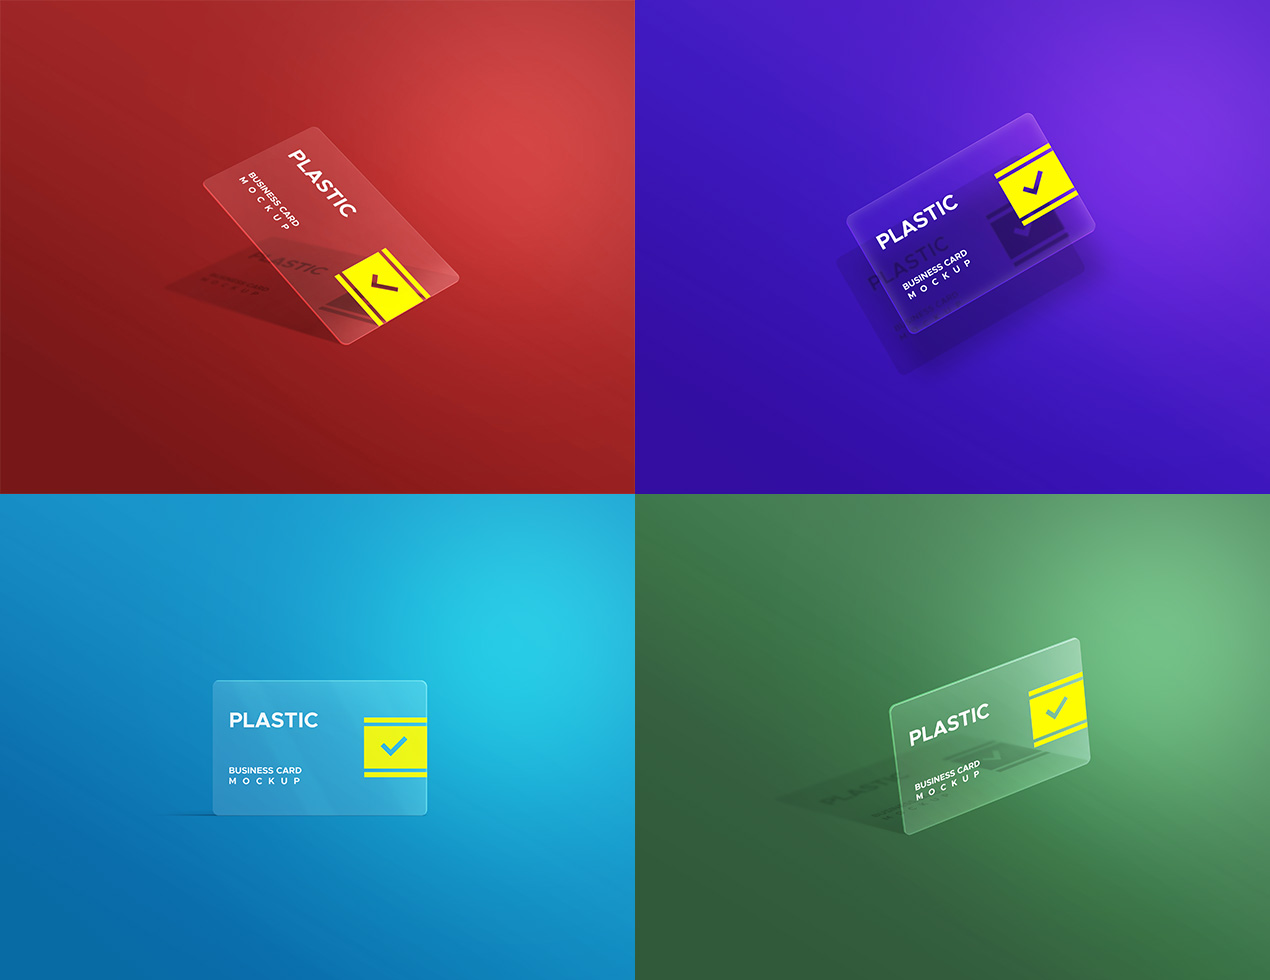 Plastic Business Card Mockups